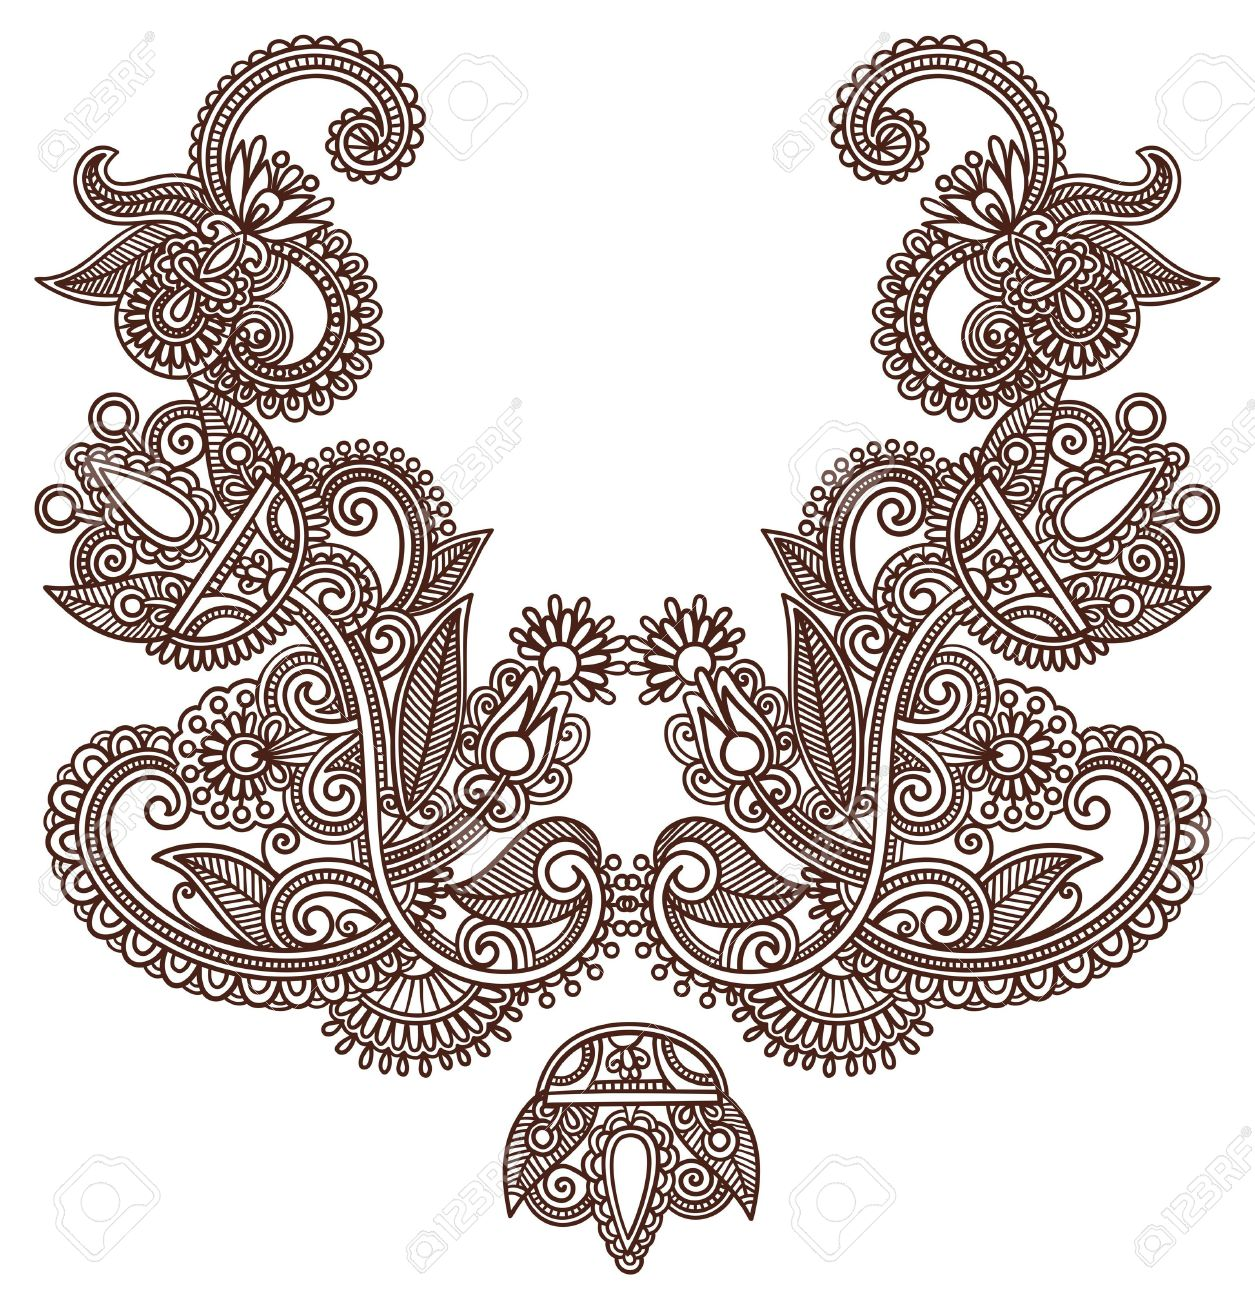 hight resolution of neckline embroidery fashion royalty free cliparts vectors and